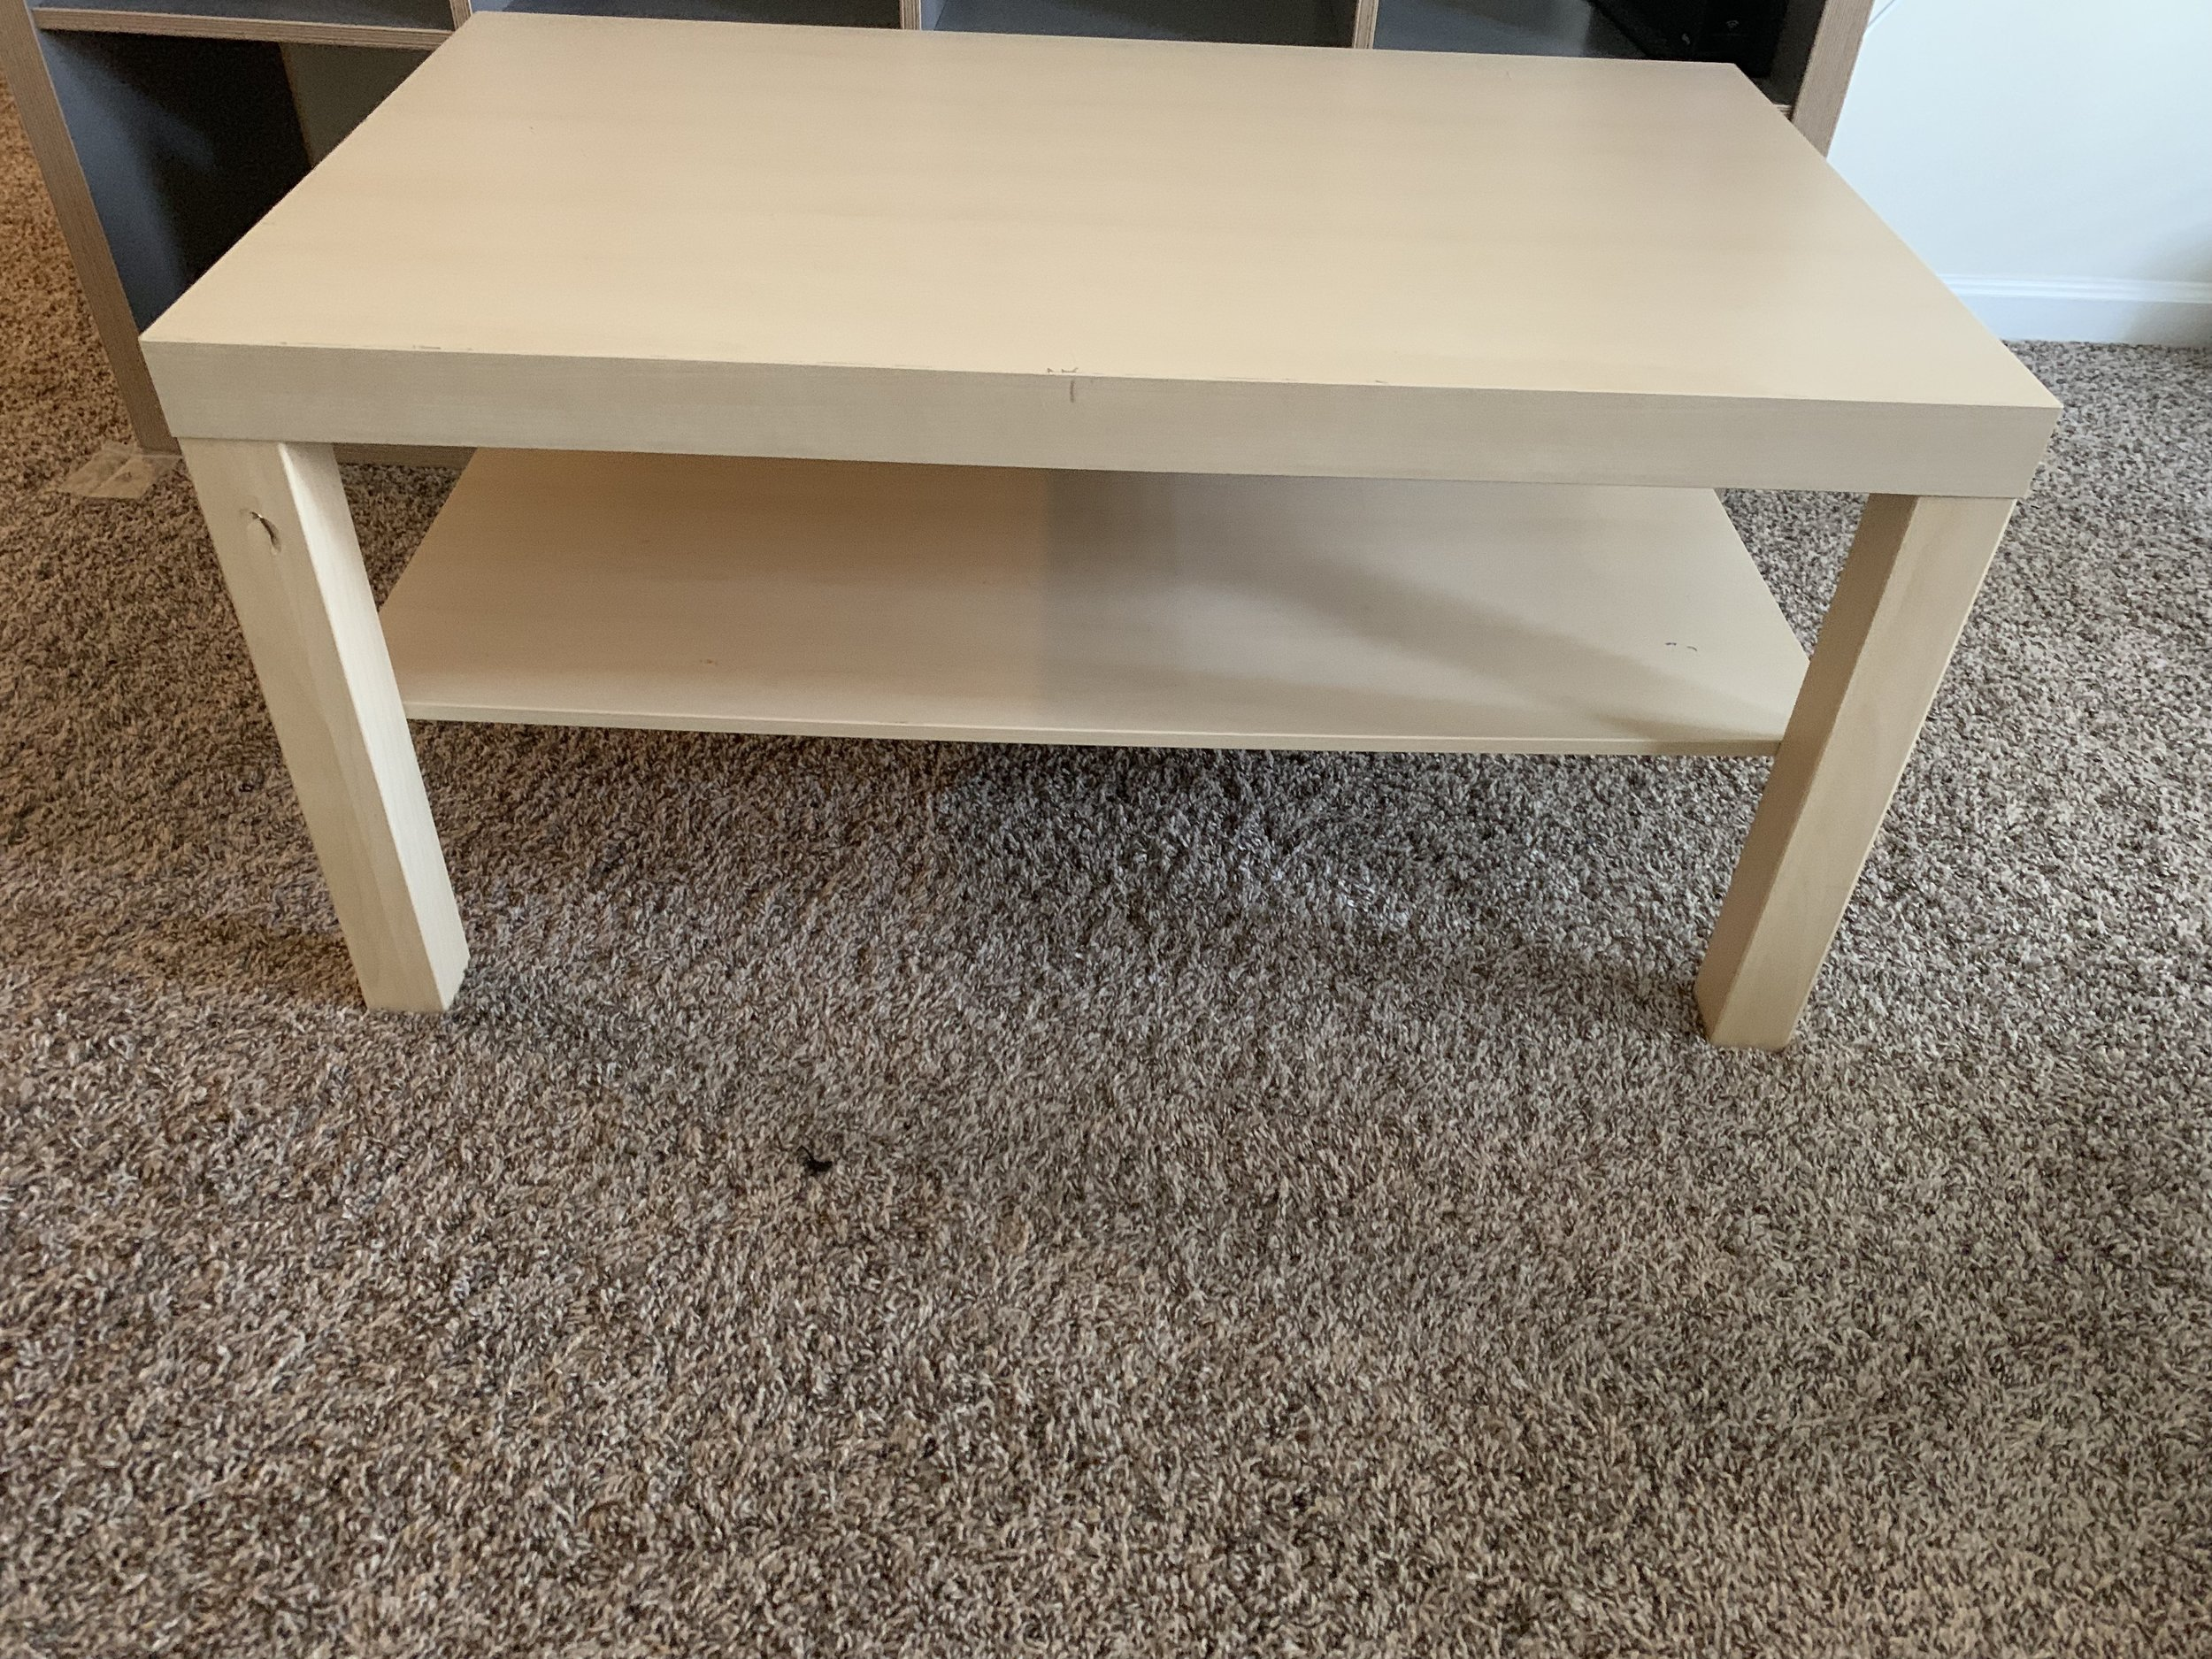 Coffee Table 1 - $15